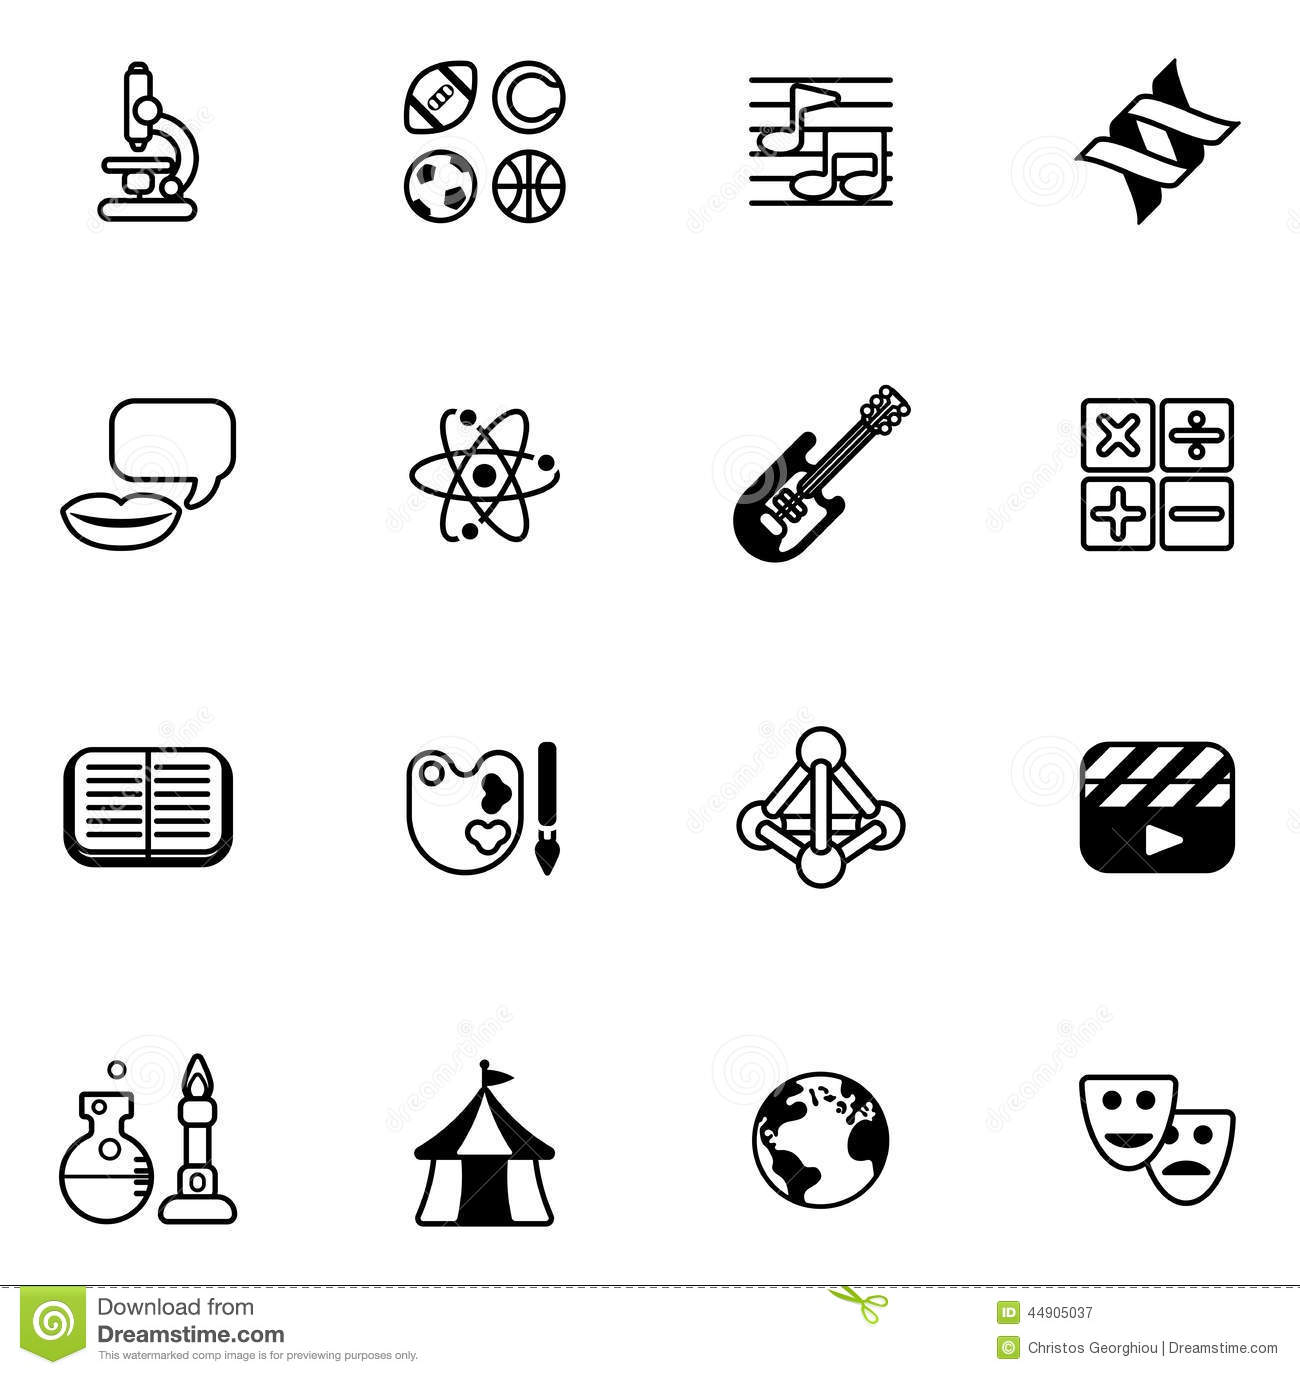 Chemistry Equipment Flash Cards as well Stock Illustration Education Quiz Subject Icons Covering Math Sports Music Science History Lots More Image44905037 as well Flask 250172 likewise Stock Illustration Science Technology Seamless Vector Background Physics Chemistry Molecule Biology Medicine Atom Illustration Image54831176 in addition Beaker. on flask icon